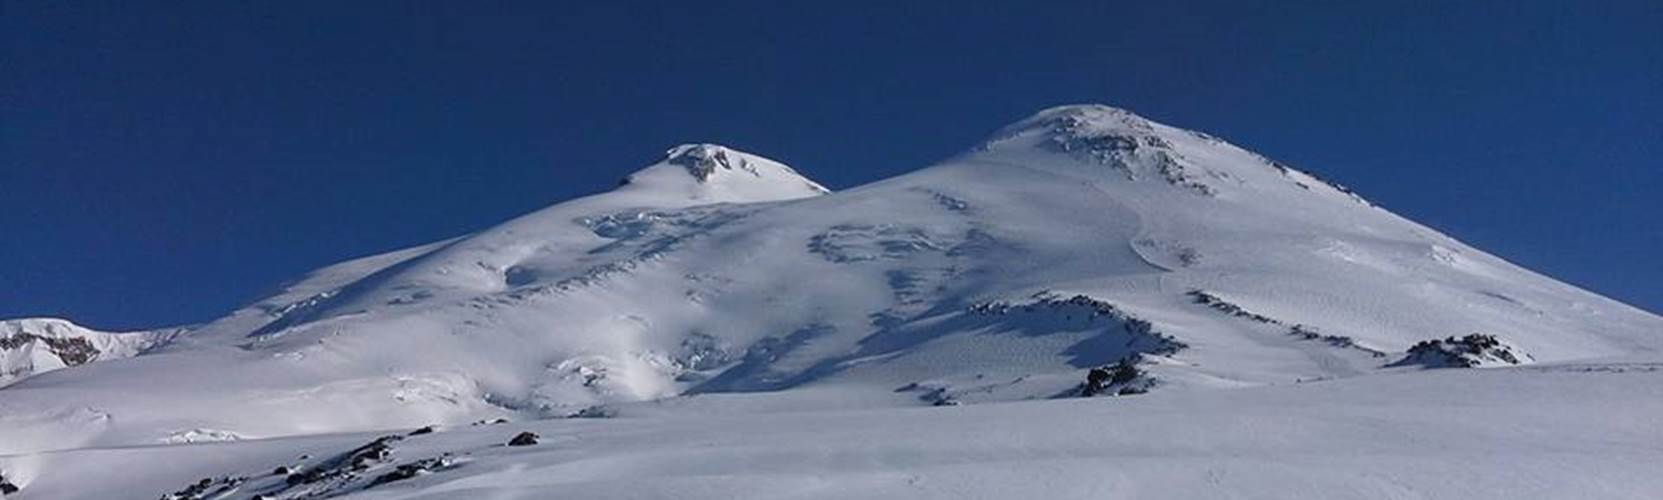 Mount Elbrus in Caucasus